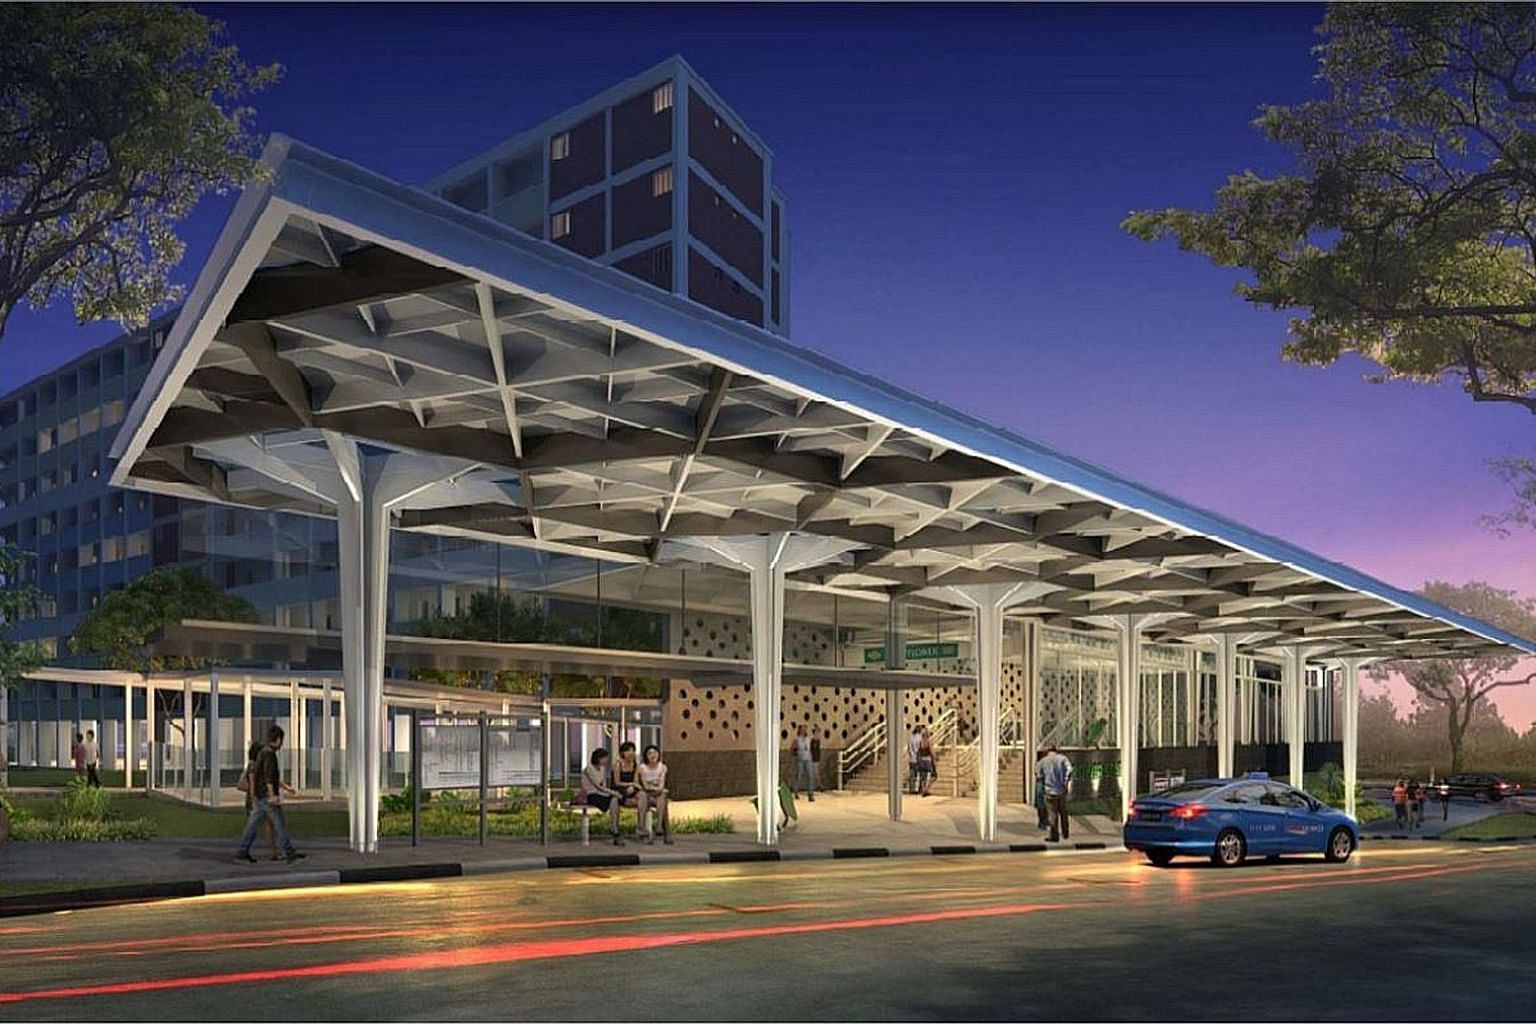 Artist's impressions of the upcoming Mayflower station in Ang Mo Kio.